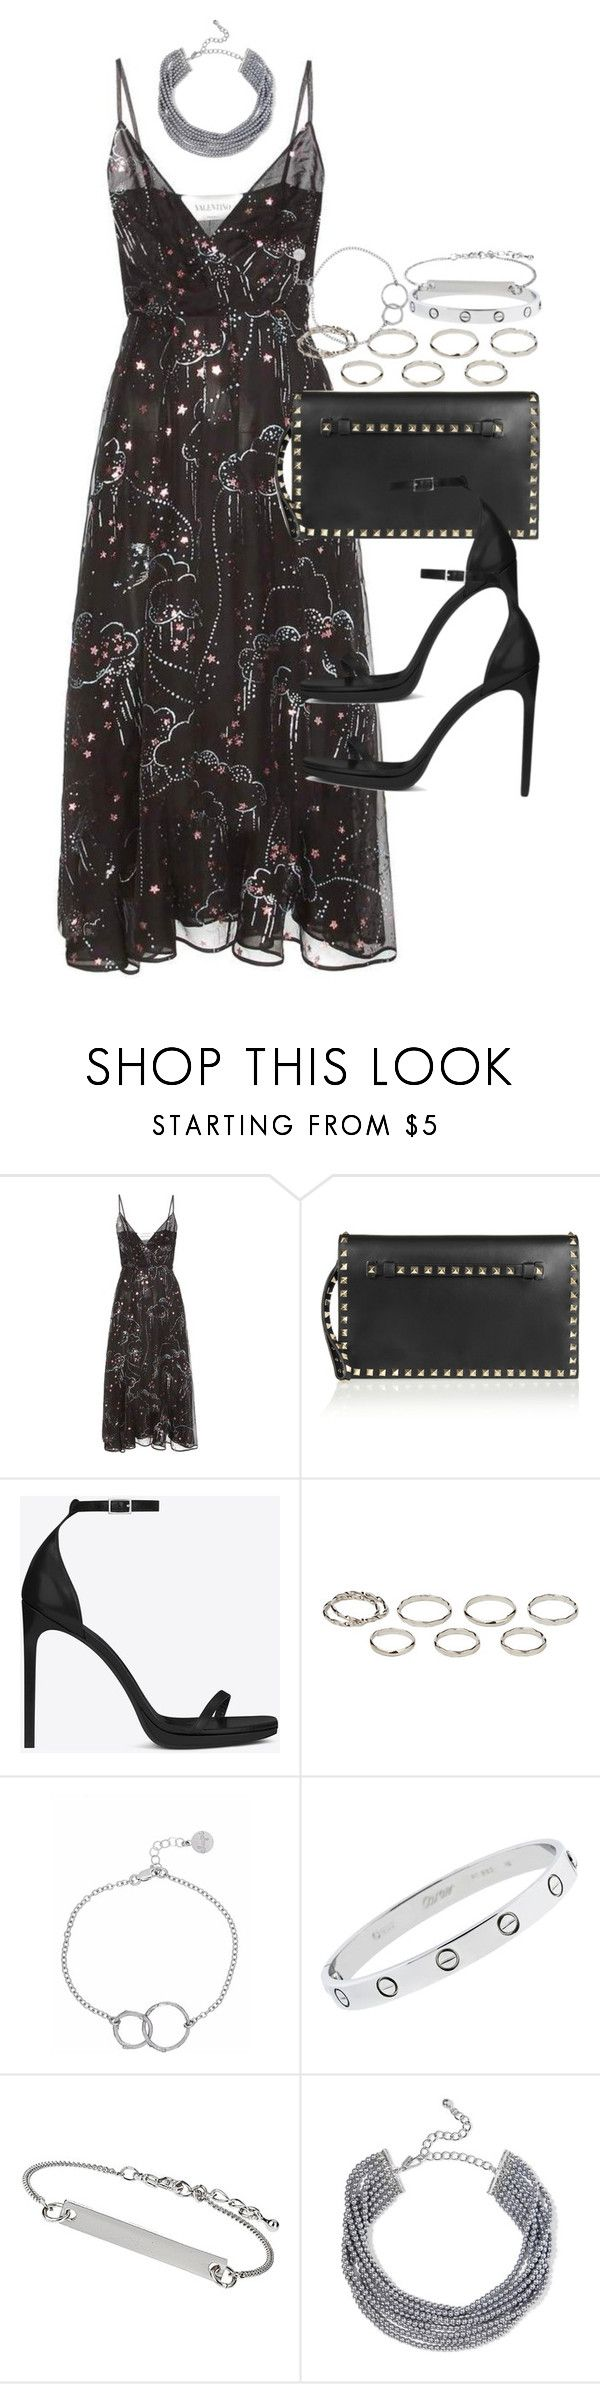 """Sin título #4263"" by hellomissapple on Polyvore featuring moda, Valentino, Yves Saint Laurent, Akira, Chupi, Cartier, Topshop y Kenneth Jay Lane"